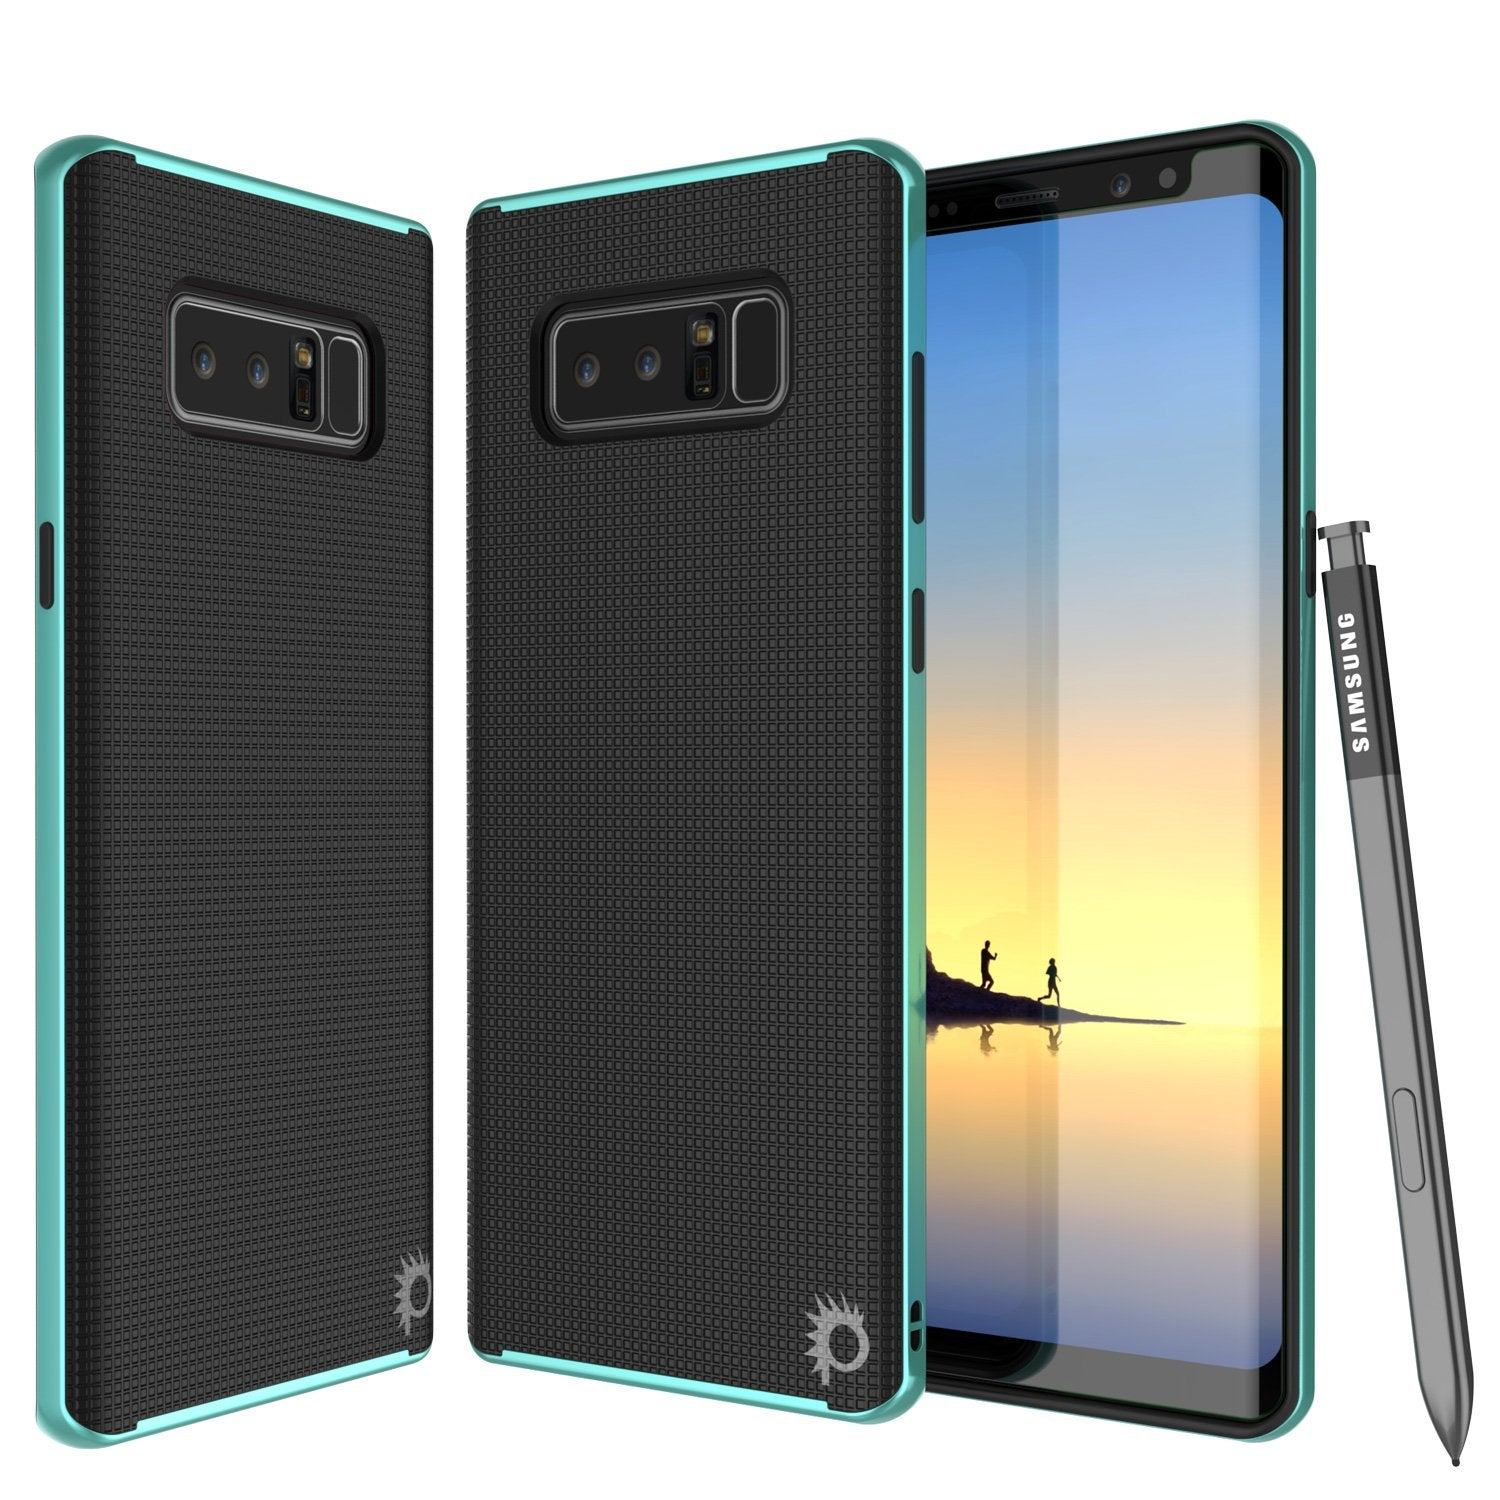 Galaxy Note 8 Screen/Shock Protective Dual Layer Case [Teal]